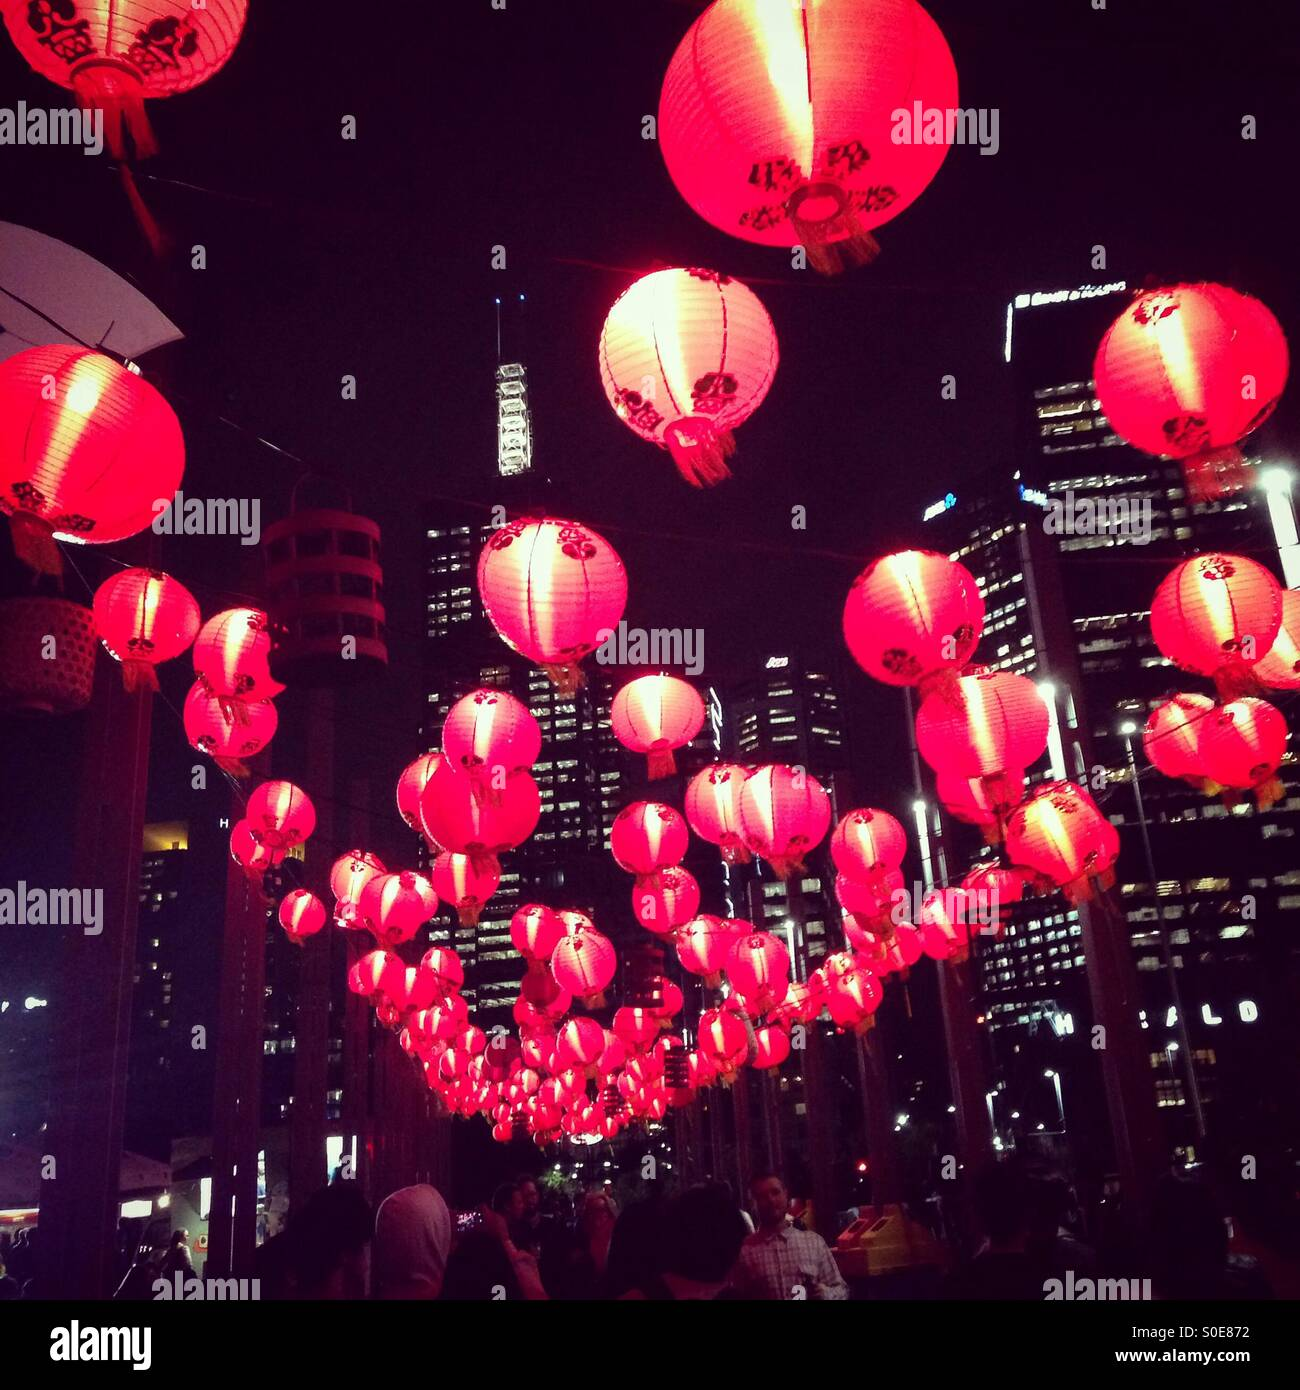 Paper Lanterns Melbourne Red Lanterns At Night Noodle Market Melbourne Australia Stock